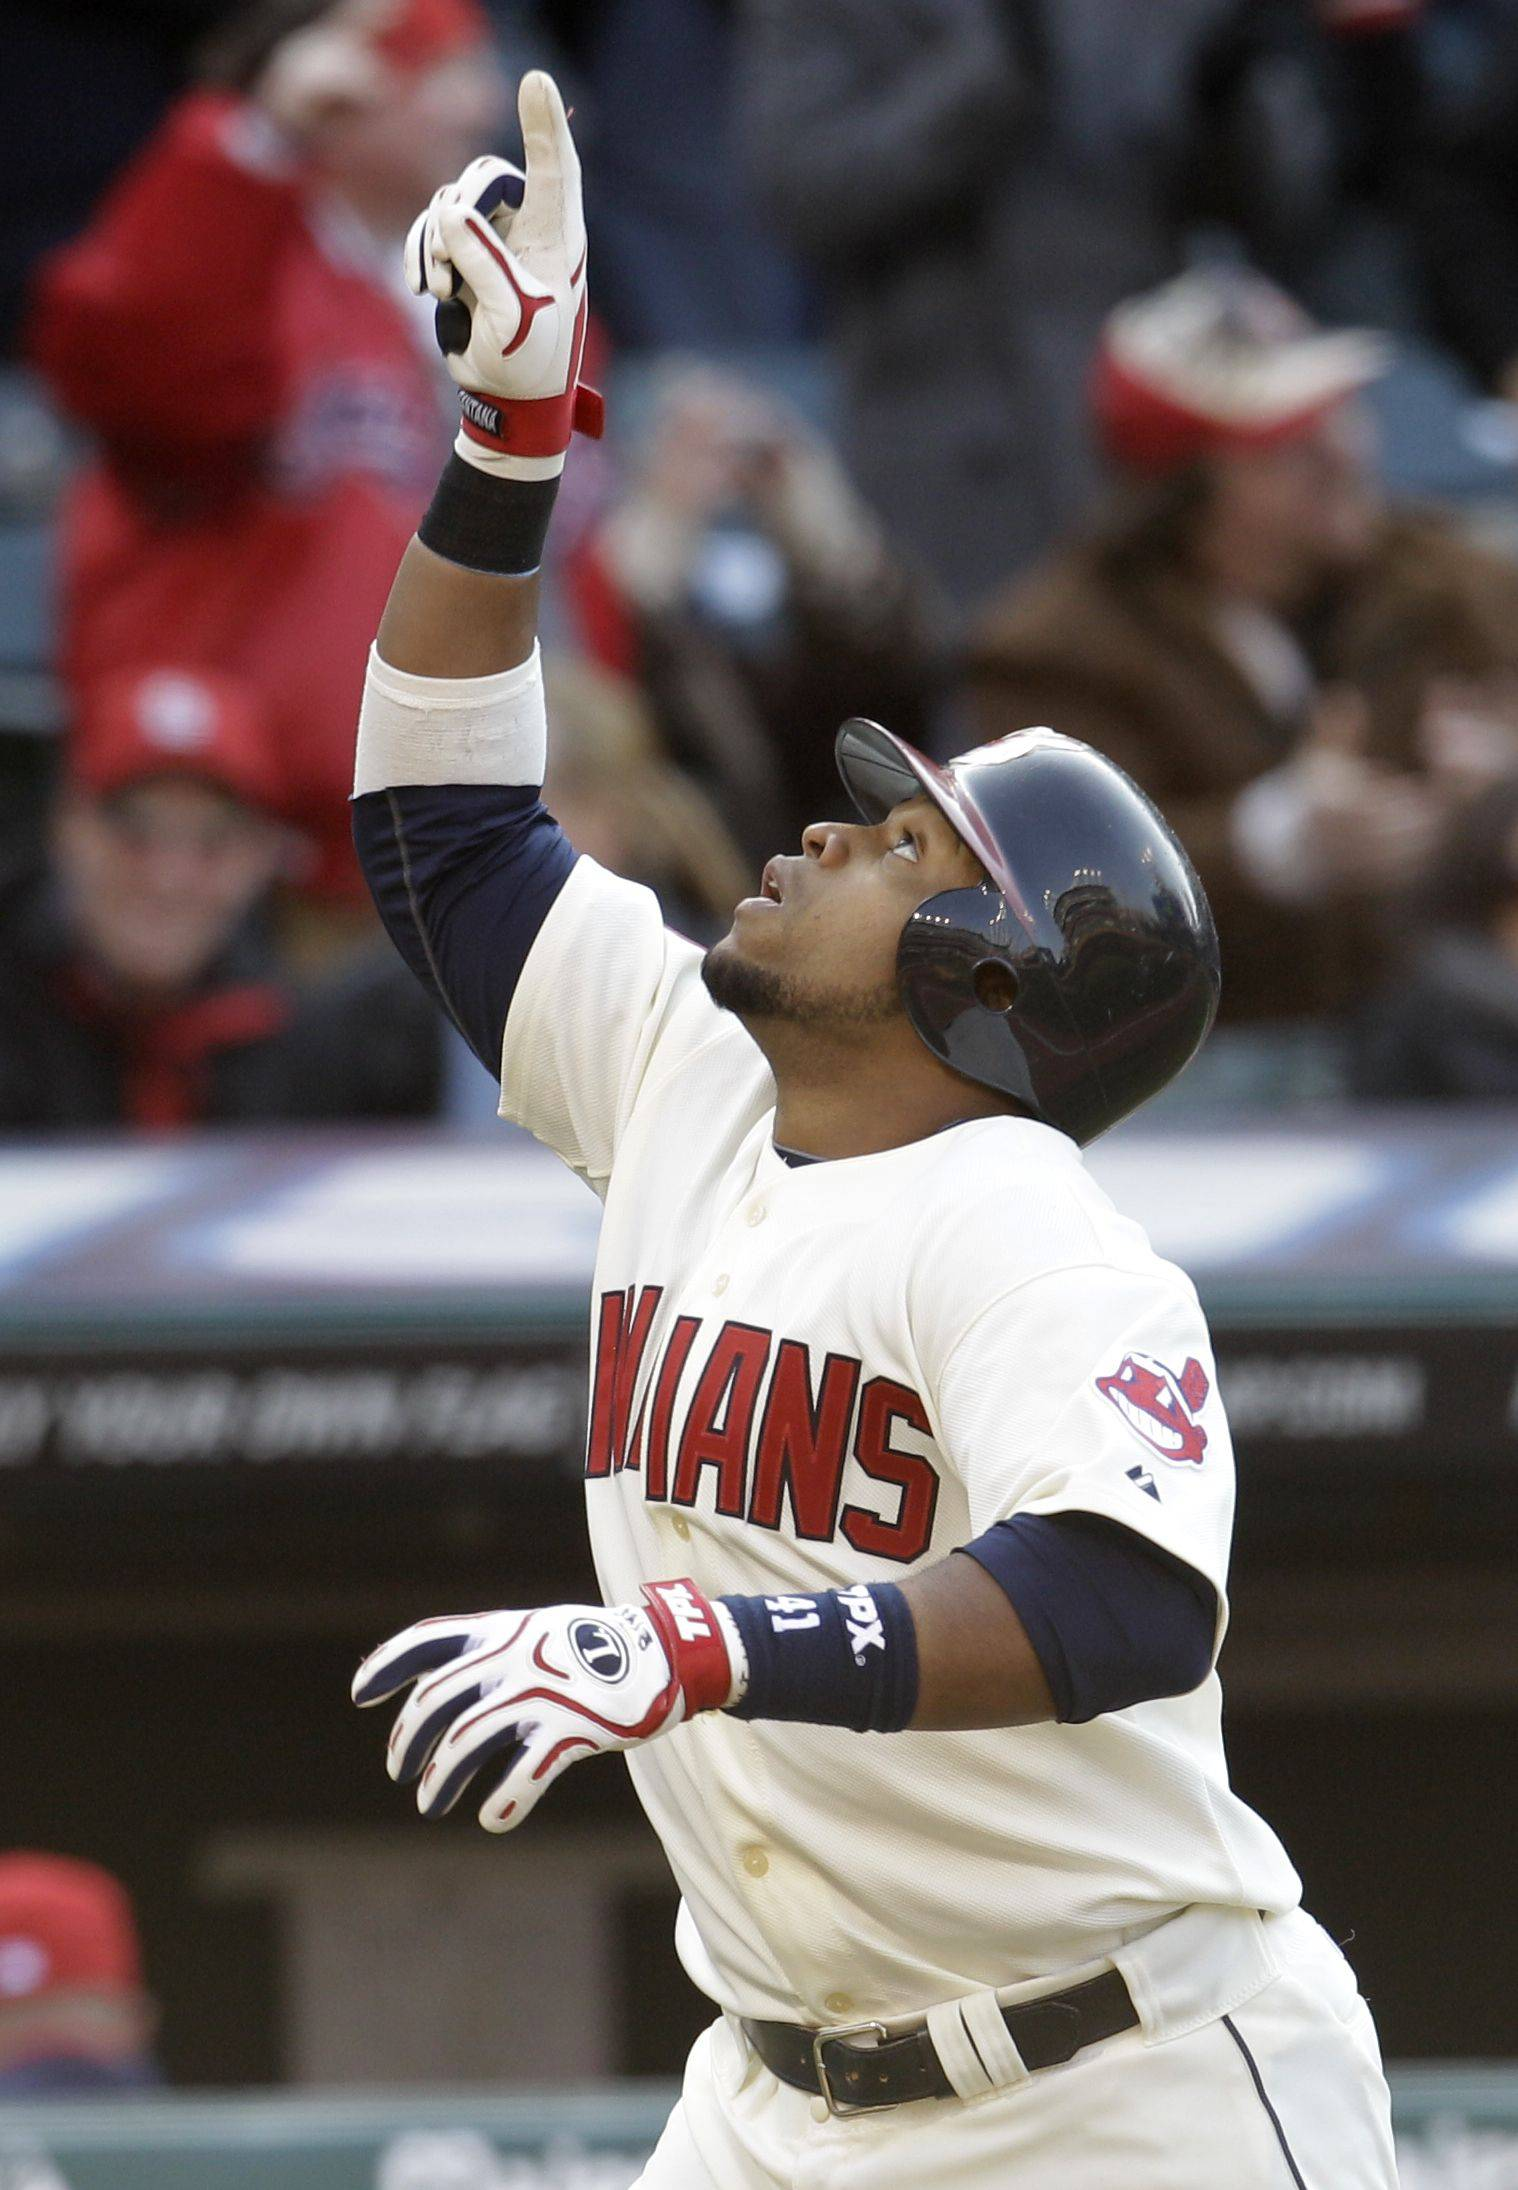 Cleveland Indians' Carlos Santana points up after hitting a two run home run off Chicago White Sox pitcher Will Ohman in the seventh inning in an opening day baseball game, Friday, April 1, 2011, in Cleveland. Asdrubal Cabrera scored.